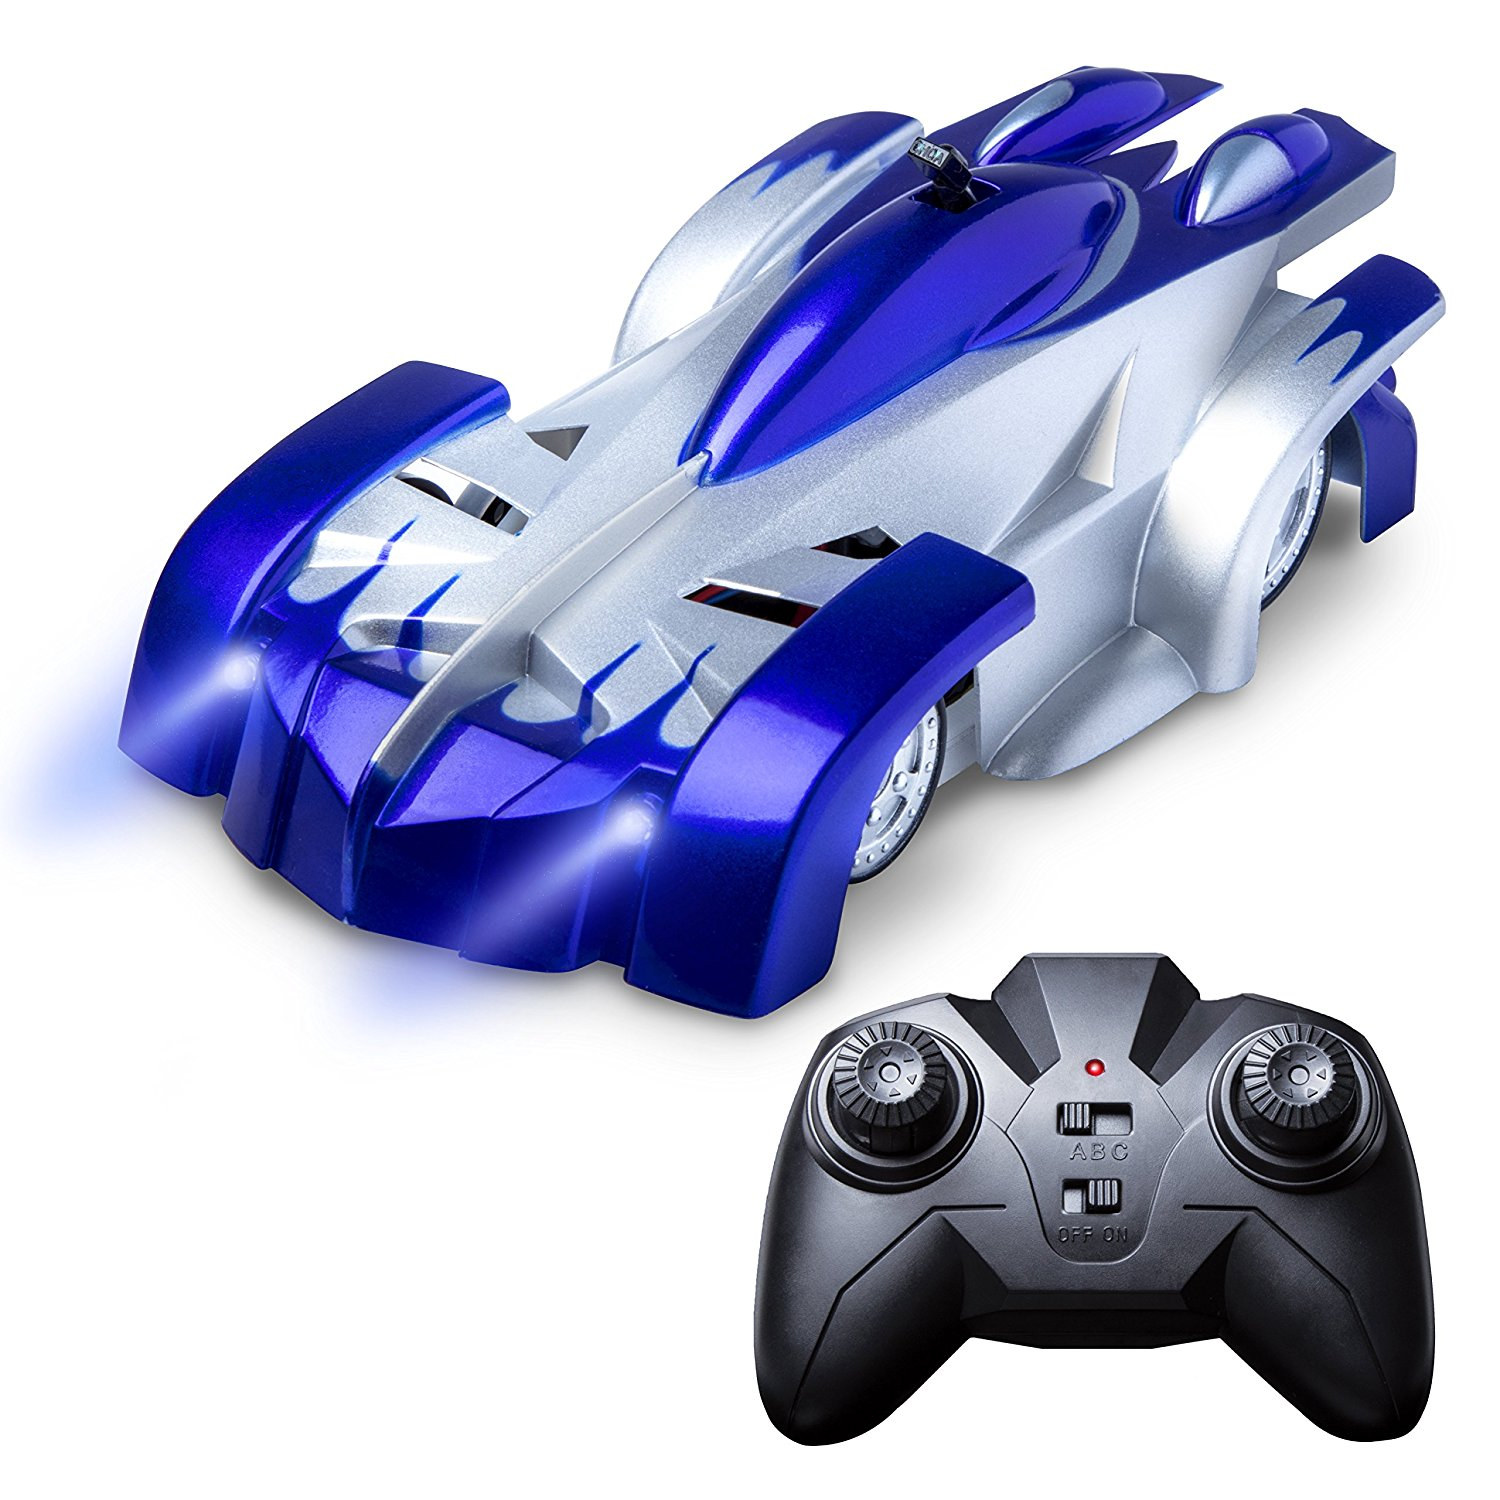 Gravity Defying Remote Control Car - RC Car Drives on Walls, Ceilings (Blue)